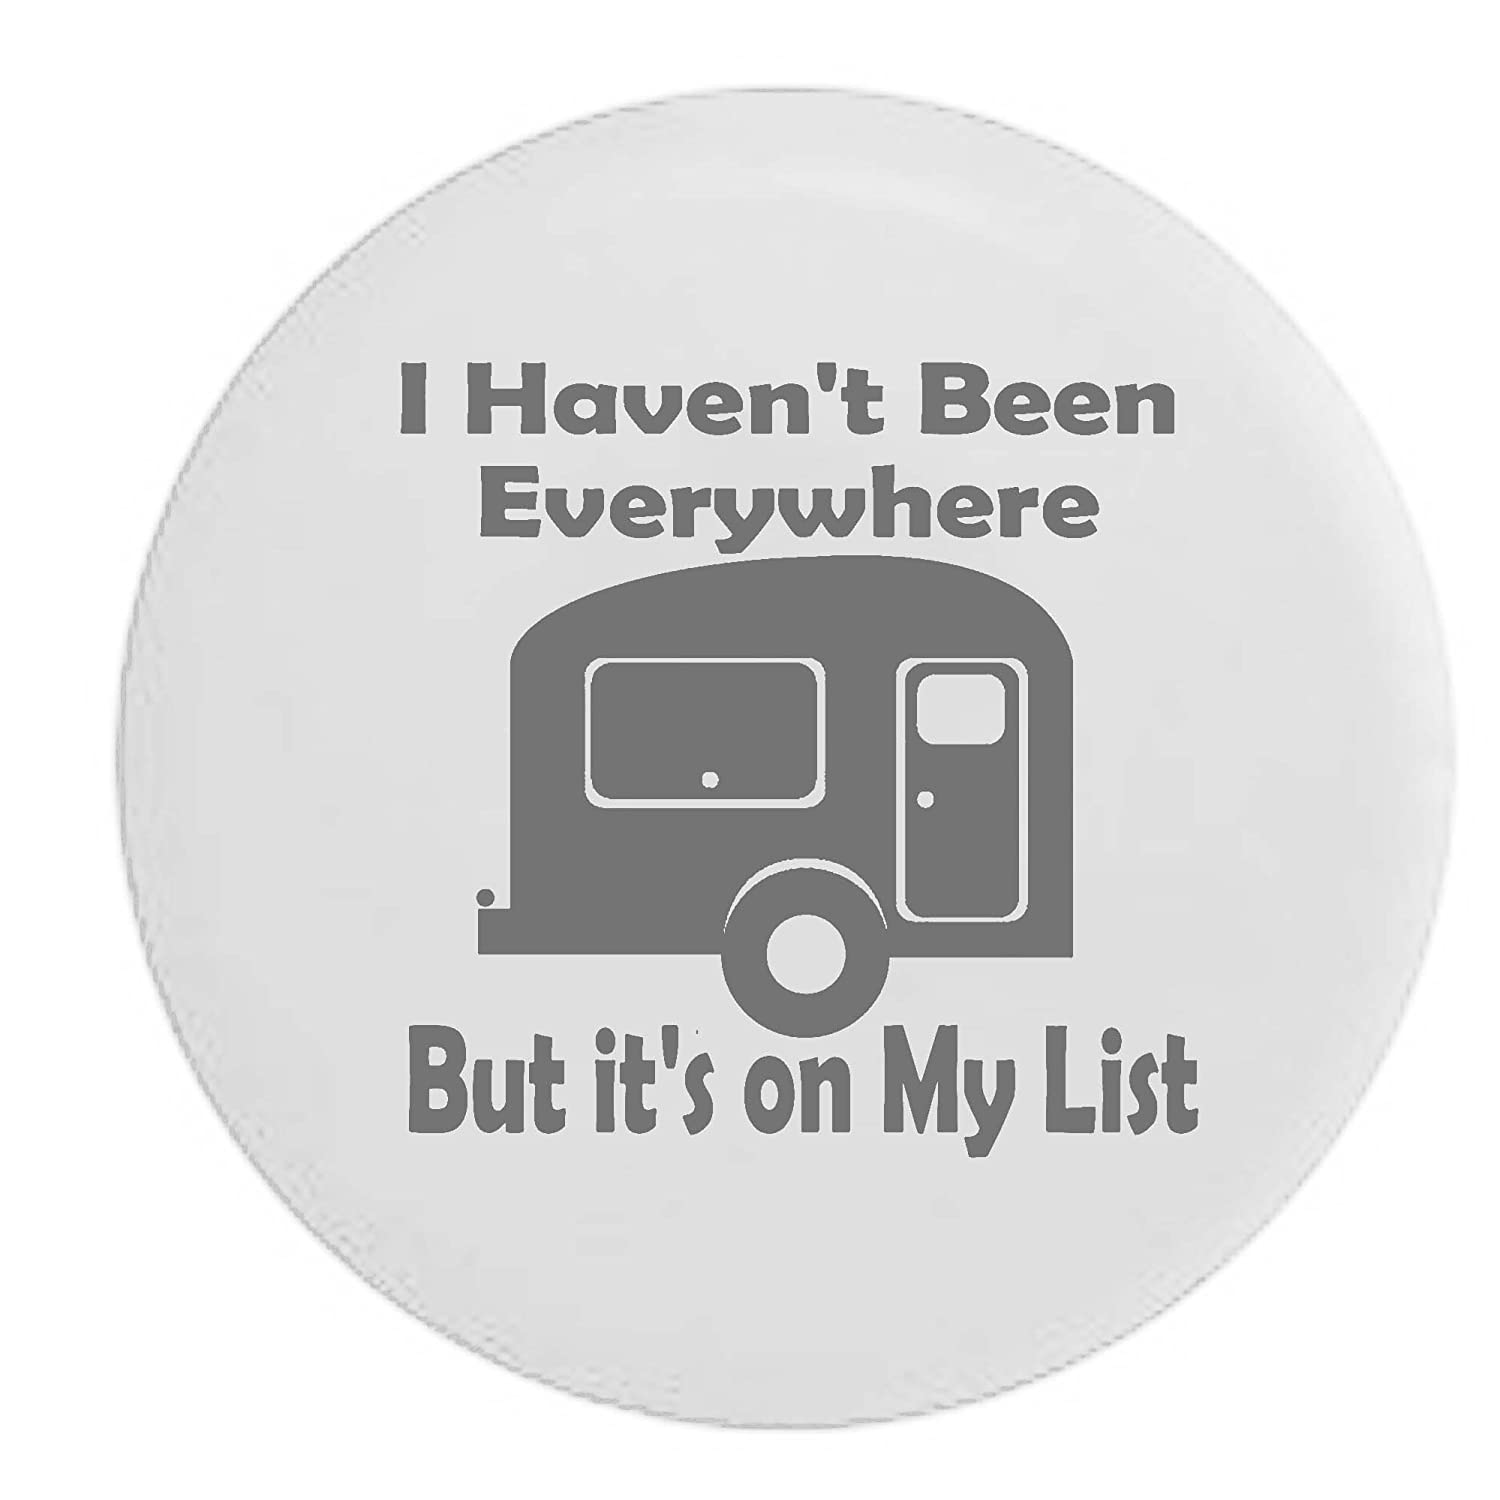 I Havent Been Everywhere But its on My List Camper RV Travel Vacation Spare Tire Cover OEM Vinyl Black 27.5 in Tan